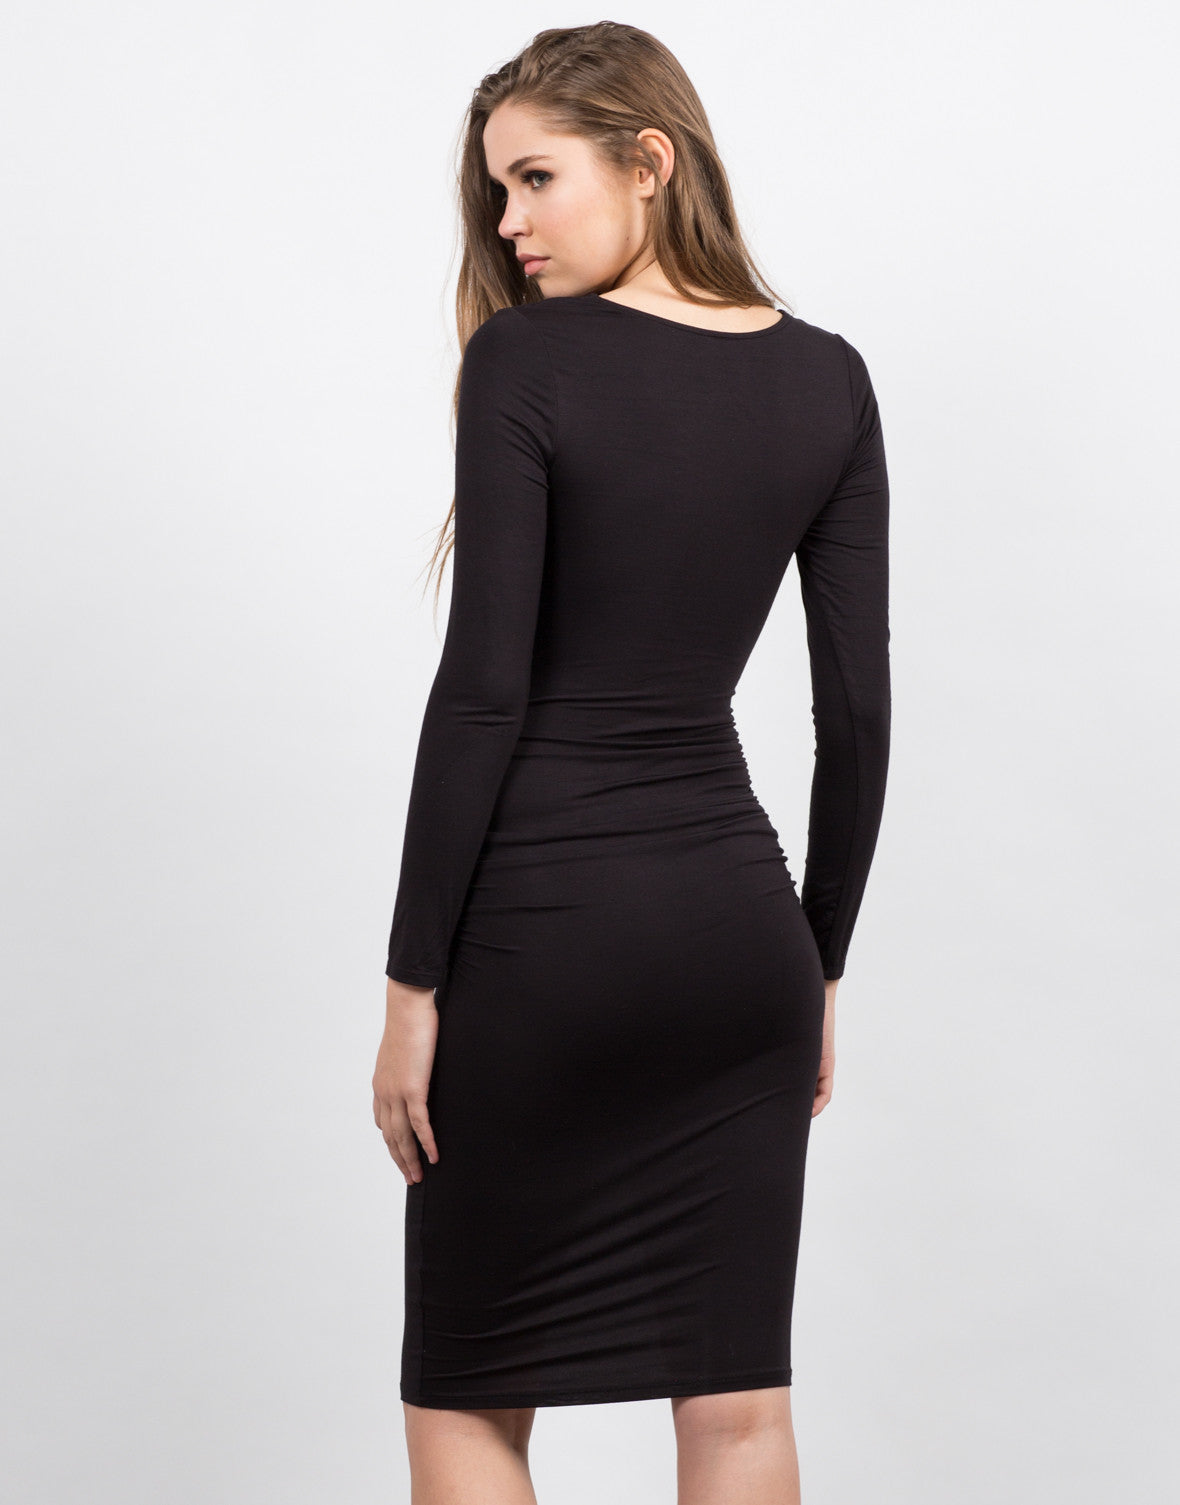 Back View of Scrunched Lace Up Dress